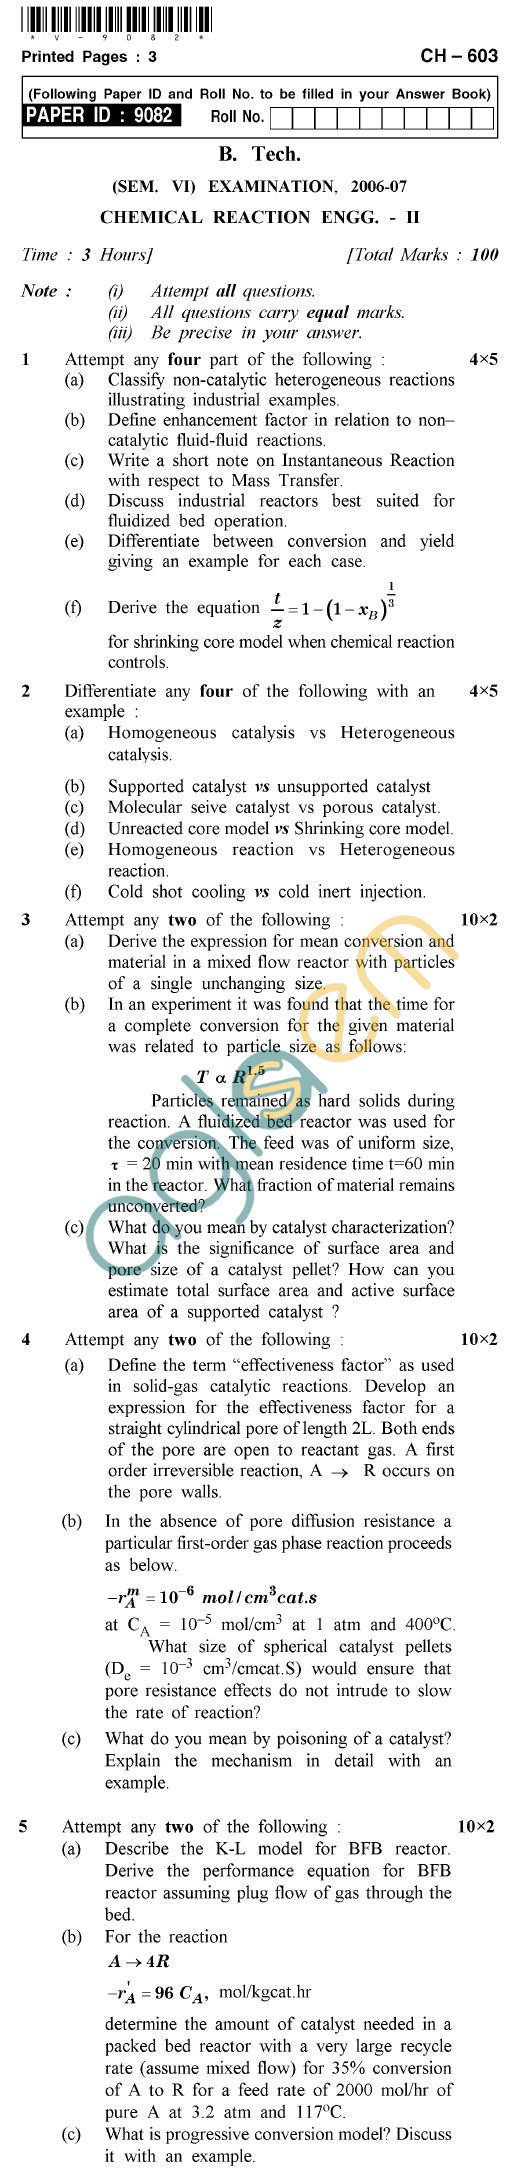 UPTU B.Tech Question Papers - CH-603 - Chemical Reaction Engineering-II